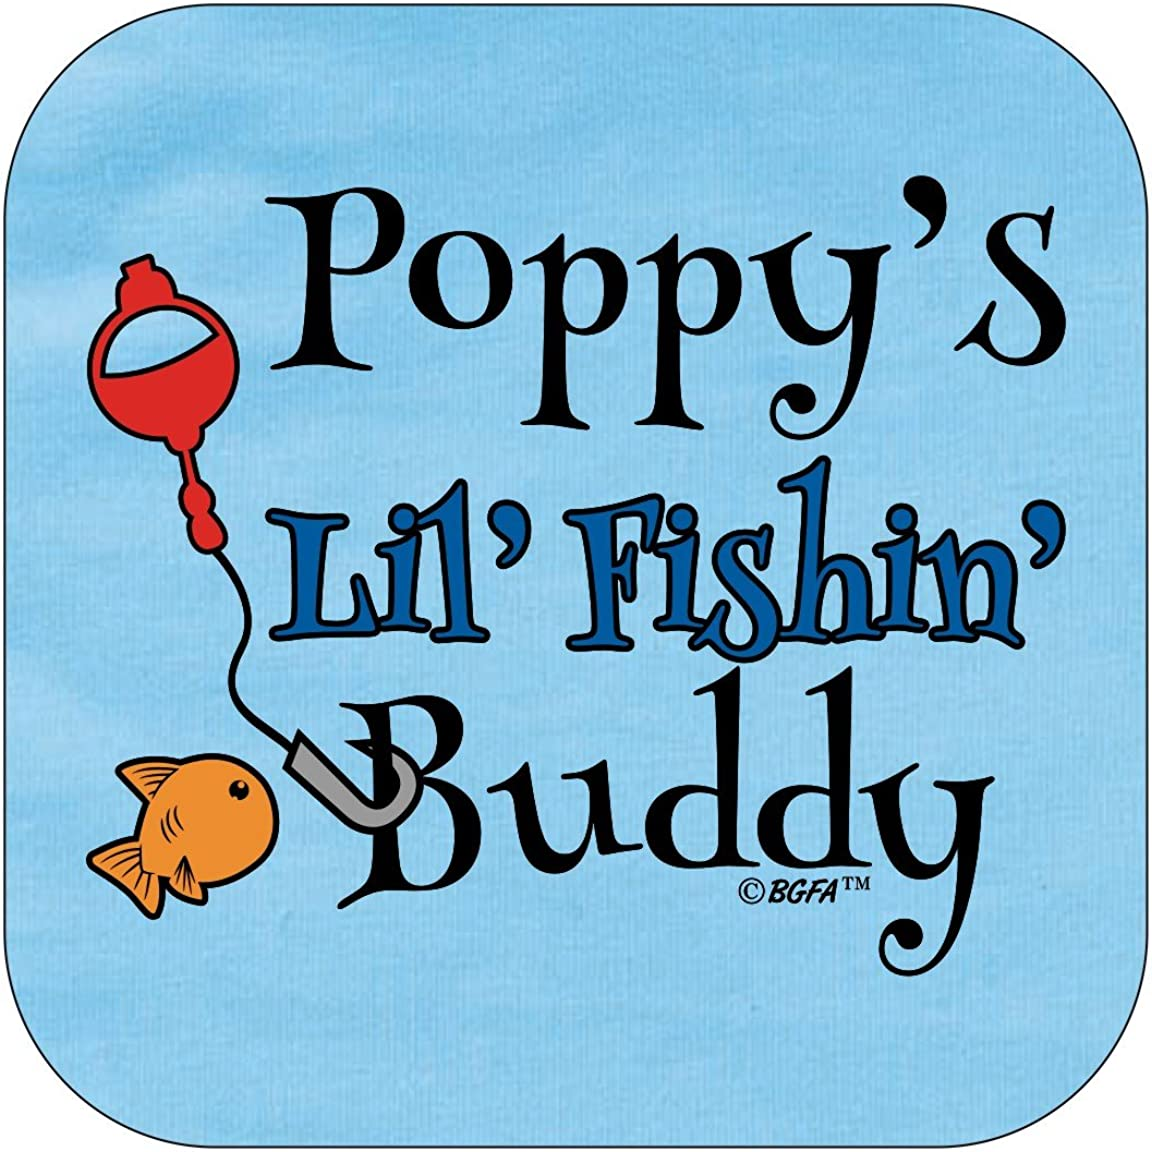 Download Amazon Com Baby Gifts For All Poppy S Lil Fishing Buddy Bodysuit Clothing